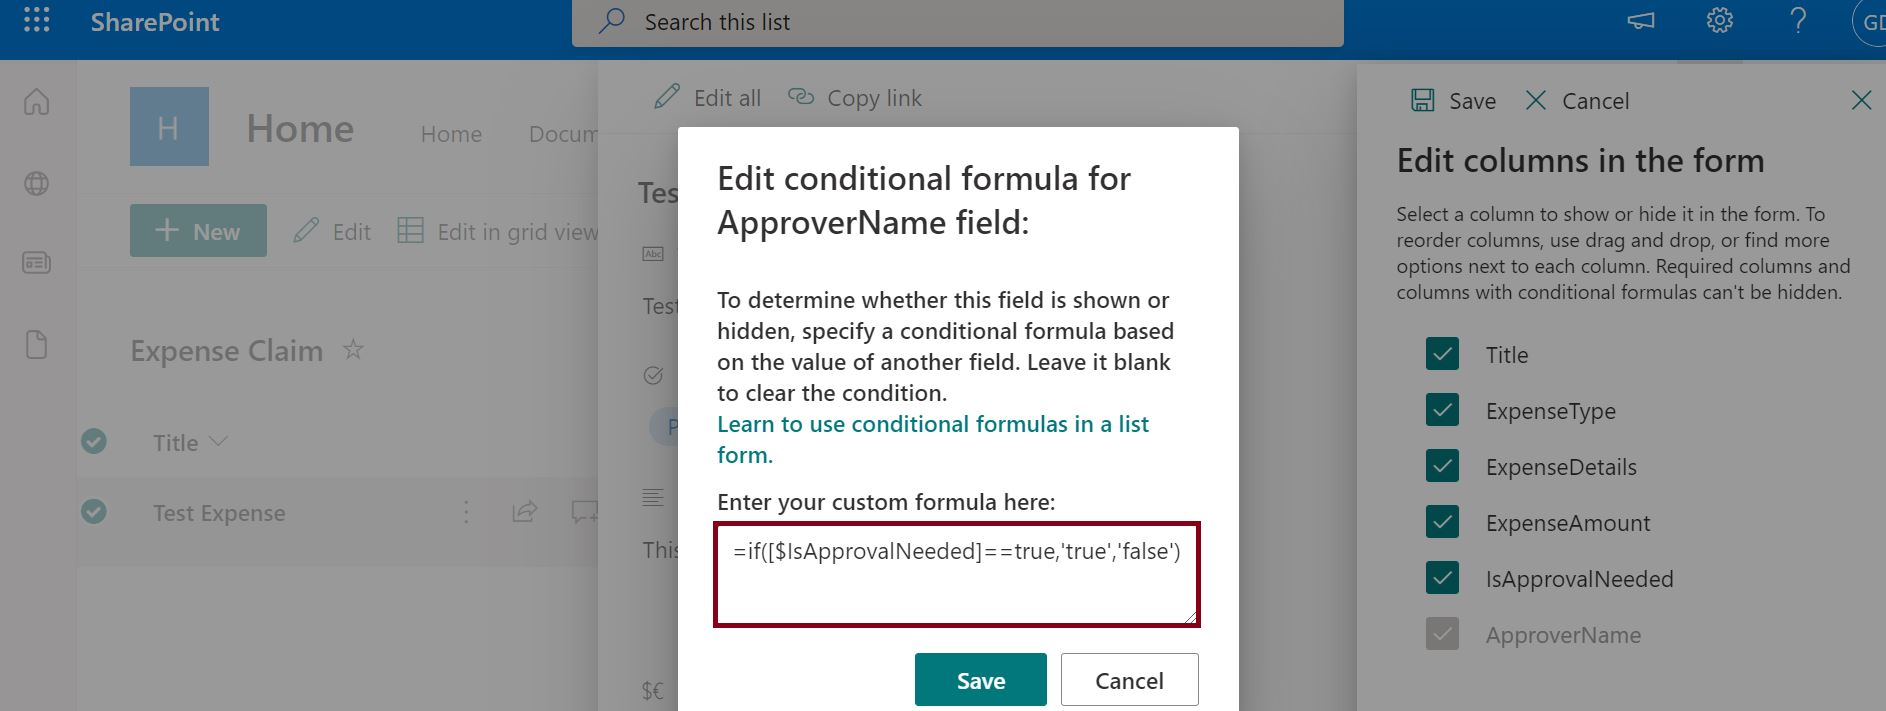 Edit conditional formula for SharePoint field